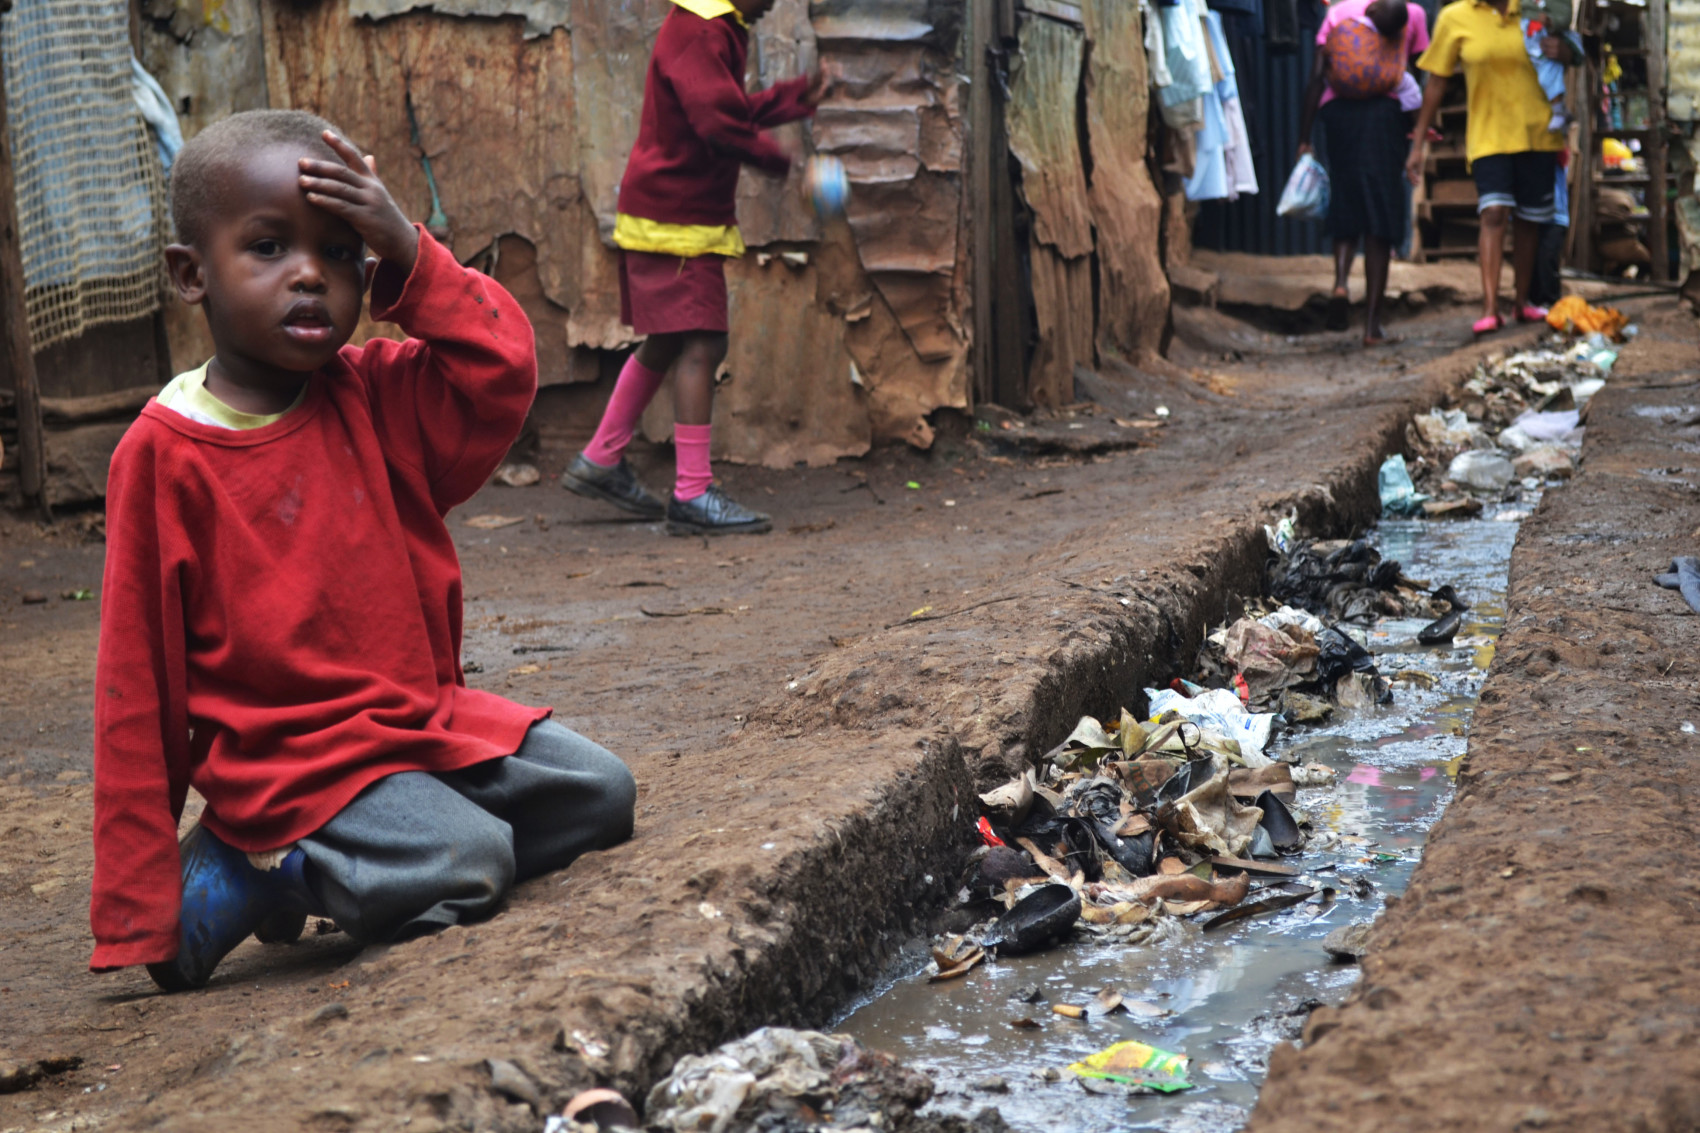 https://s3.amazonaws.com/providencejournal/wp-content/uploads/A_young_boy_sits_over_an_open_sewer_in_the_Kibera_slum_Nairobi-e1452875547488.jpg